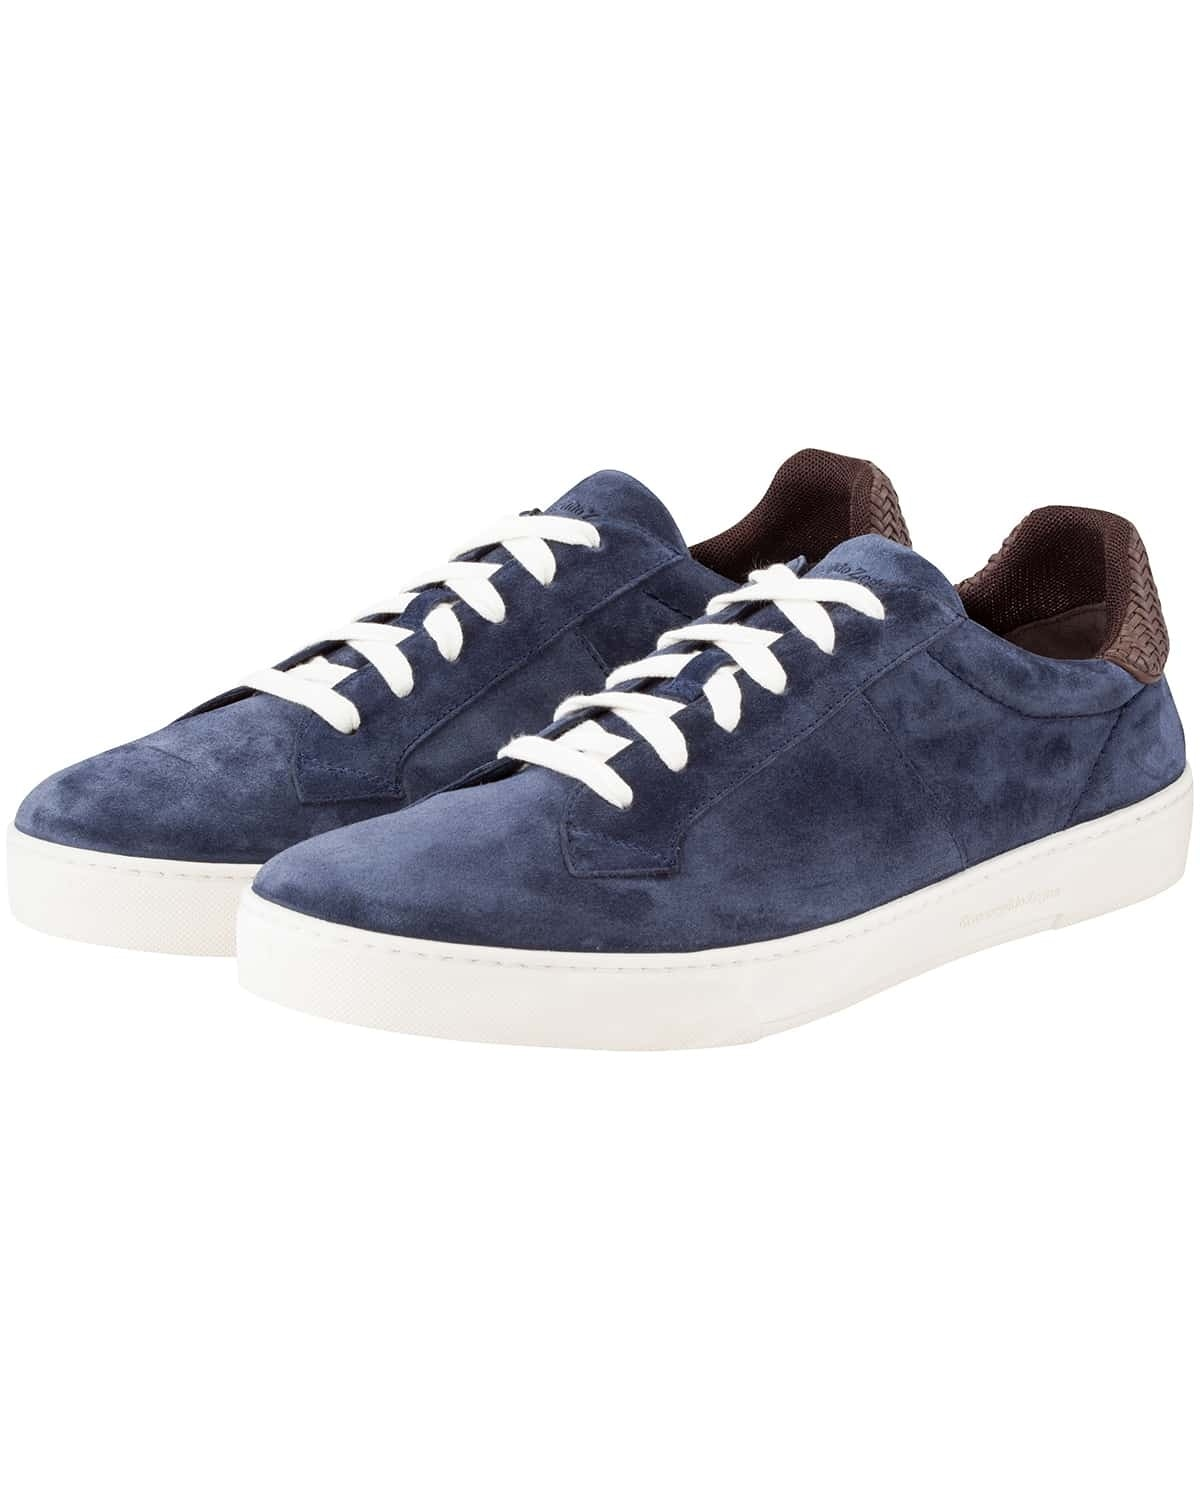 Ermenegildo Zegna, Spring-Summer Collection 2019, Sneaker, Blue, Italian, Low Top, Lodenfrey, Munich